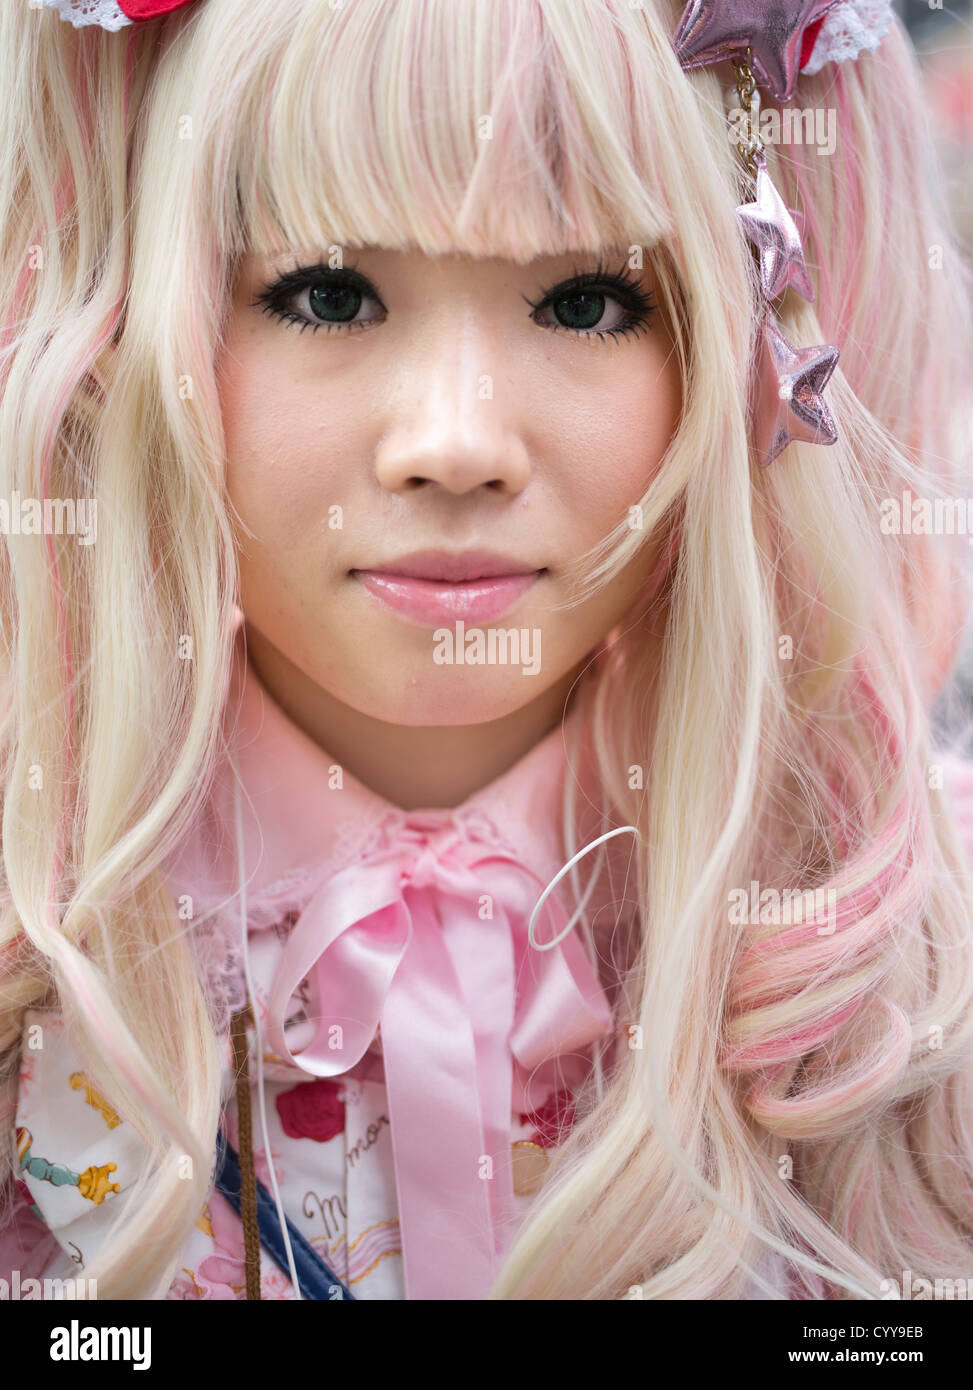 Young Japanese woman in kawaii lolita alternative fashion costume with blonde hair and pink dress - Stock Image